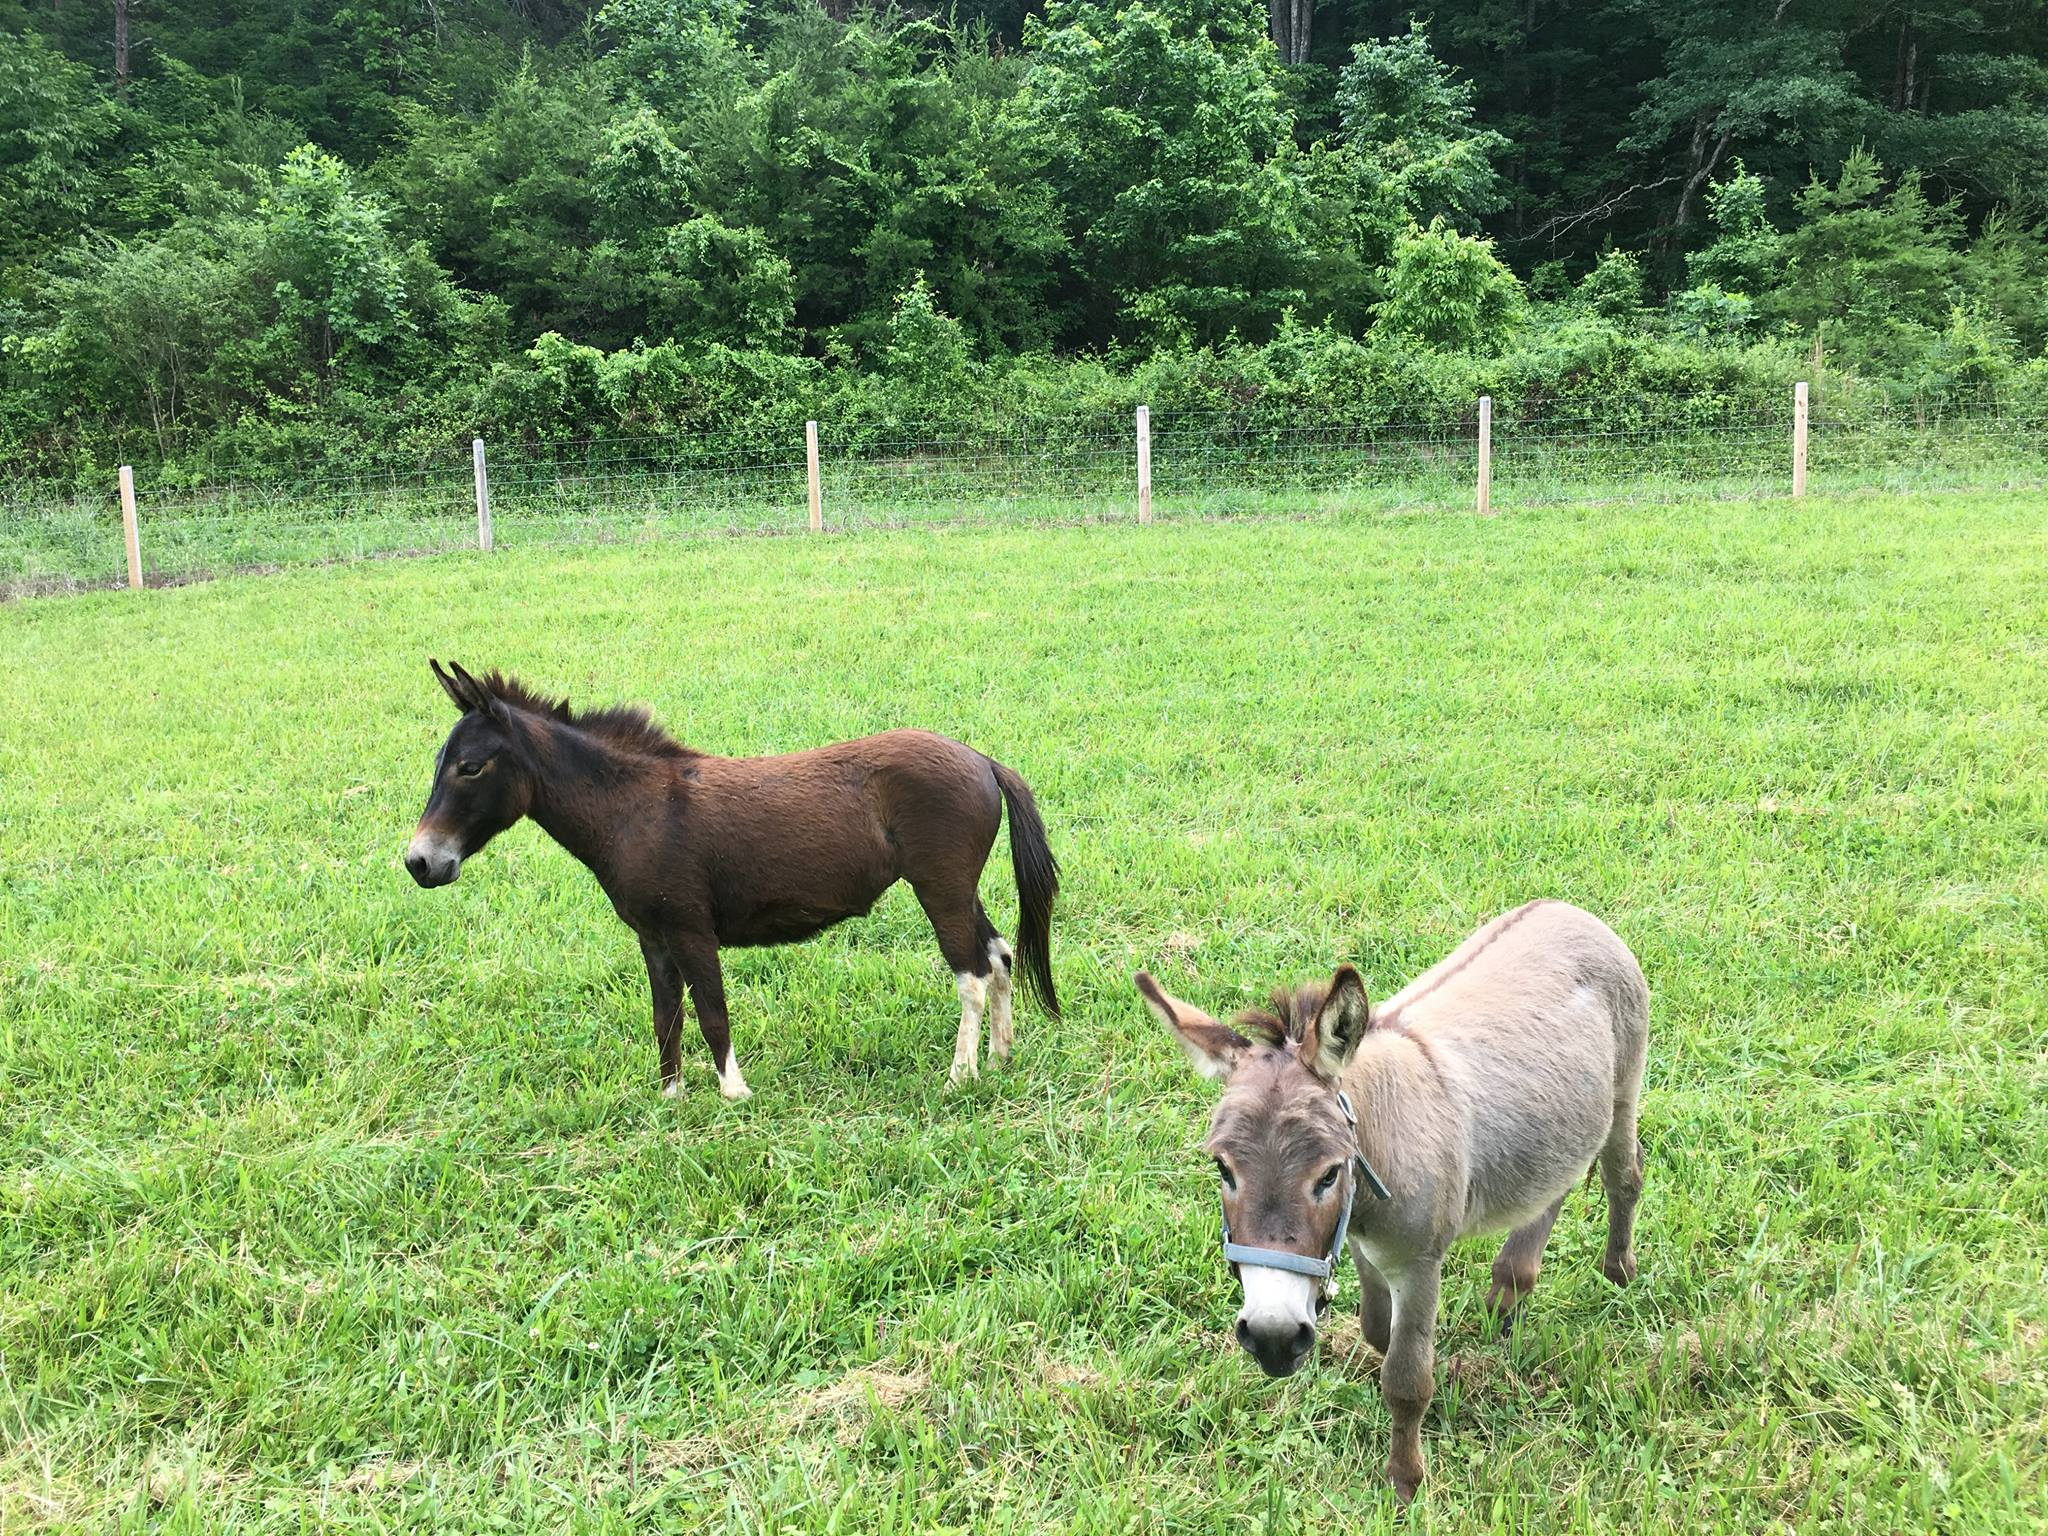 Baby Donkey In NEW HOME June 4 2017